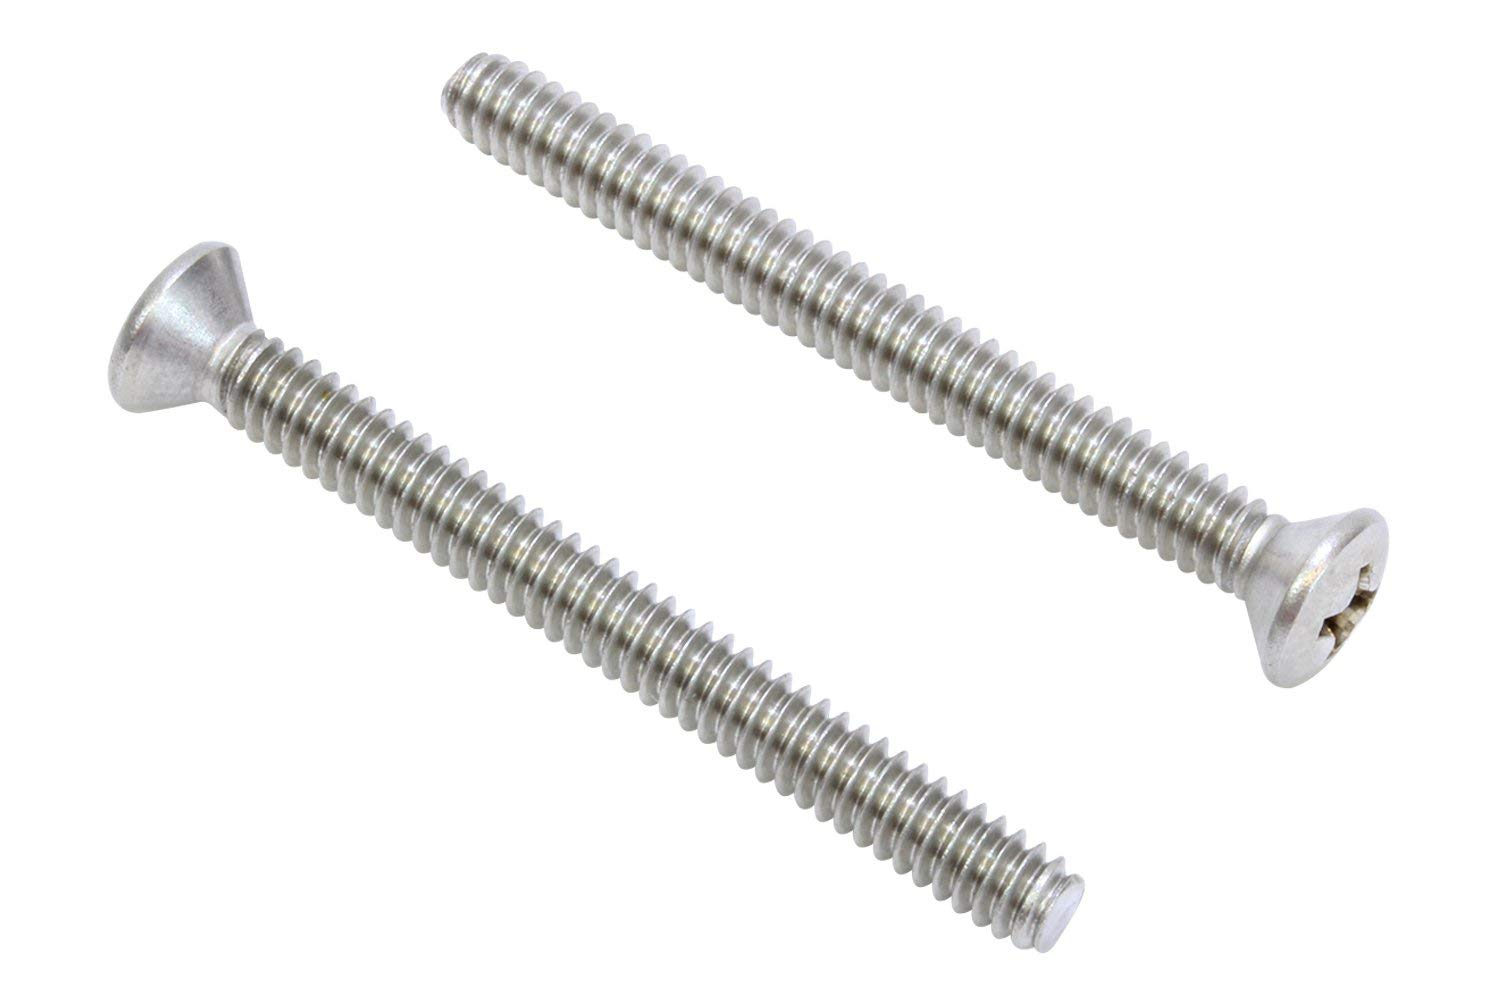 Meets ASME B18.6.3 Fully Threaded Phillips Drive 18-8 Stainless Steel Machine Screw #2-56 UNC Threads Pack of 100 Plain Finish 1//4 Length Oval Head